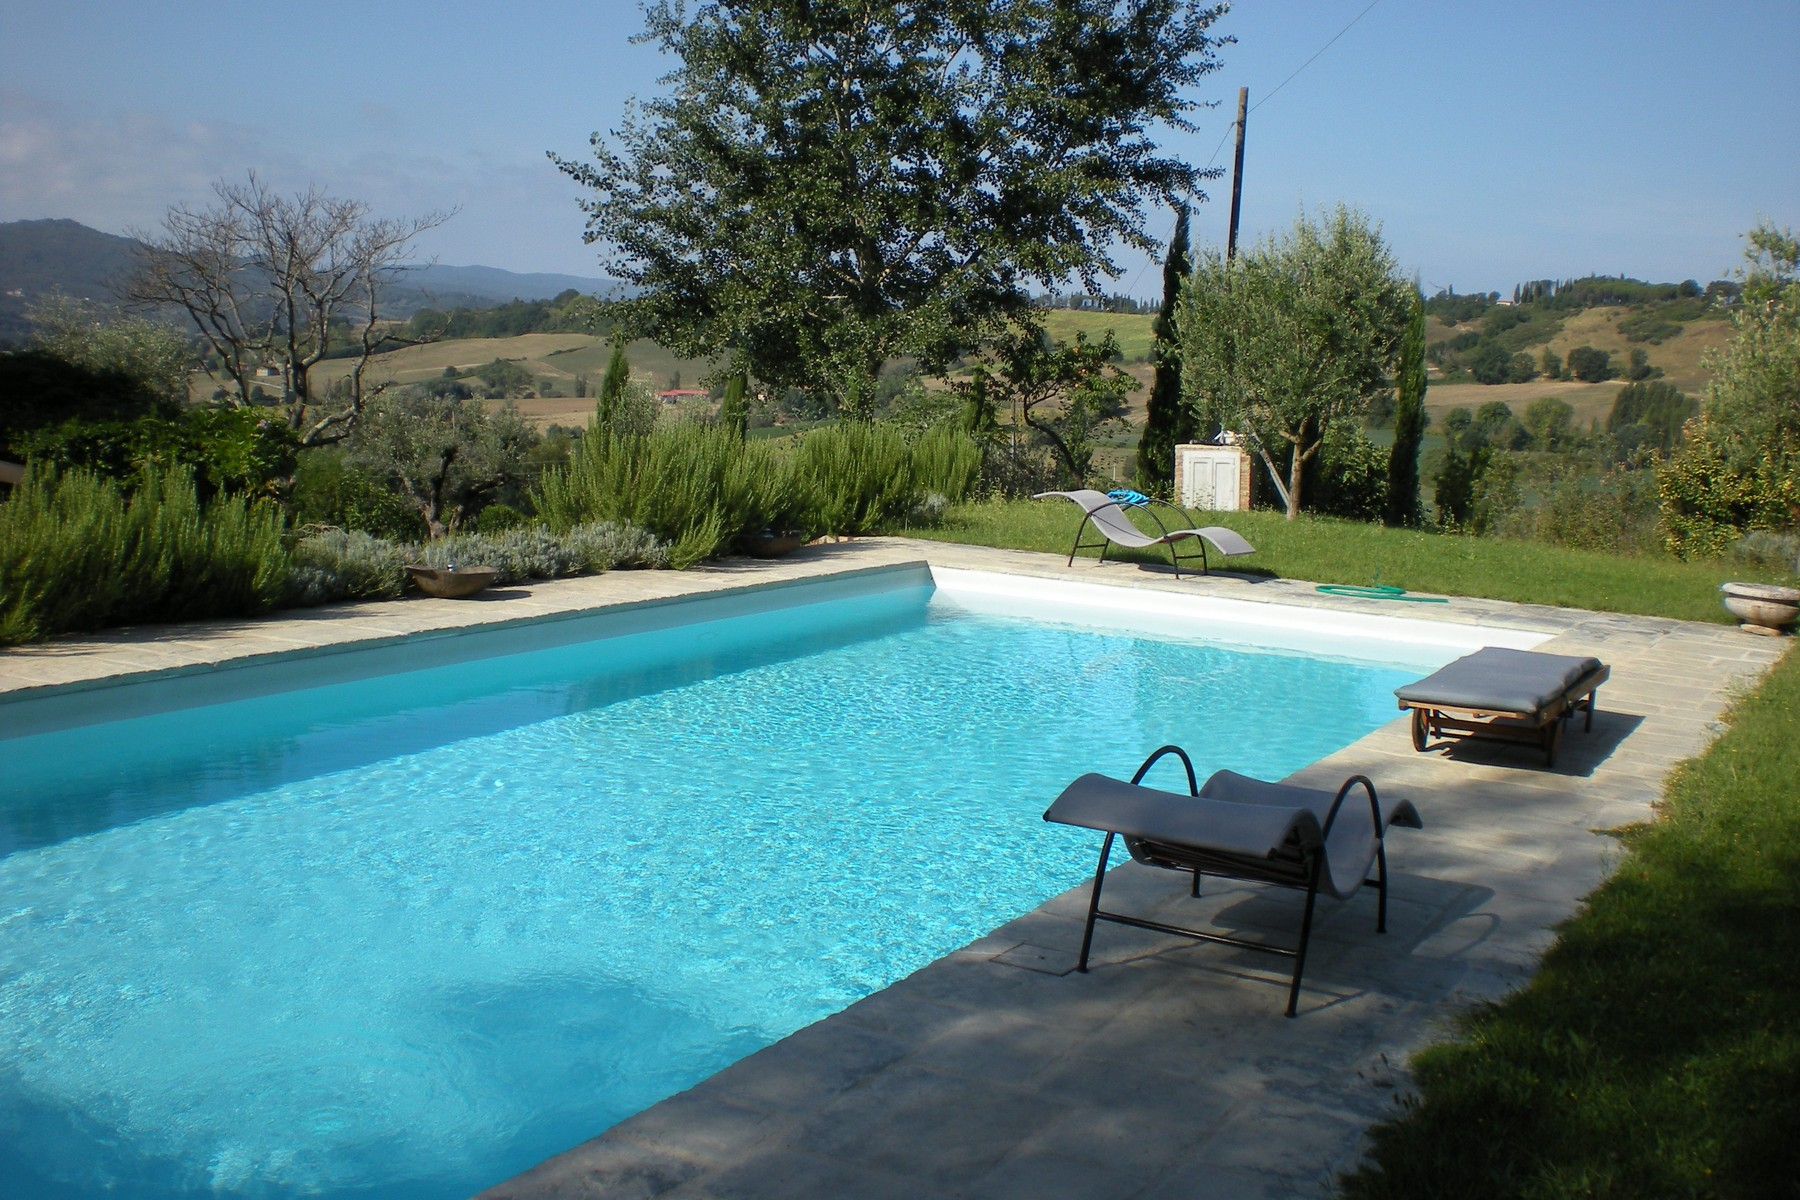 Additional photo for property listing at Stone farmhouse with stunning views Voc. Caibizzocco Montone, Perugia 06014 Italia